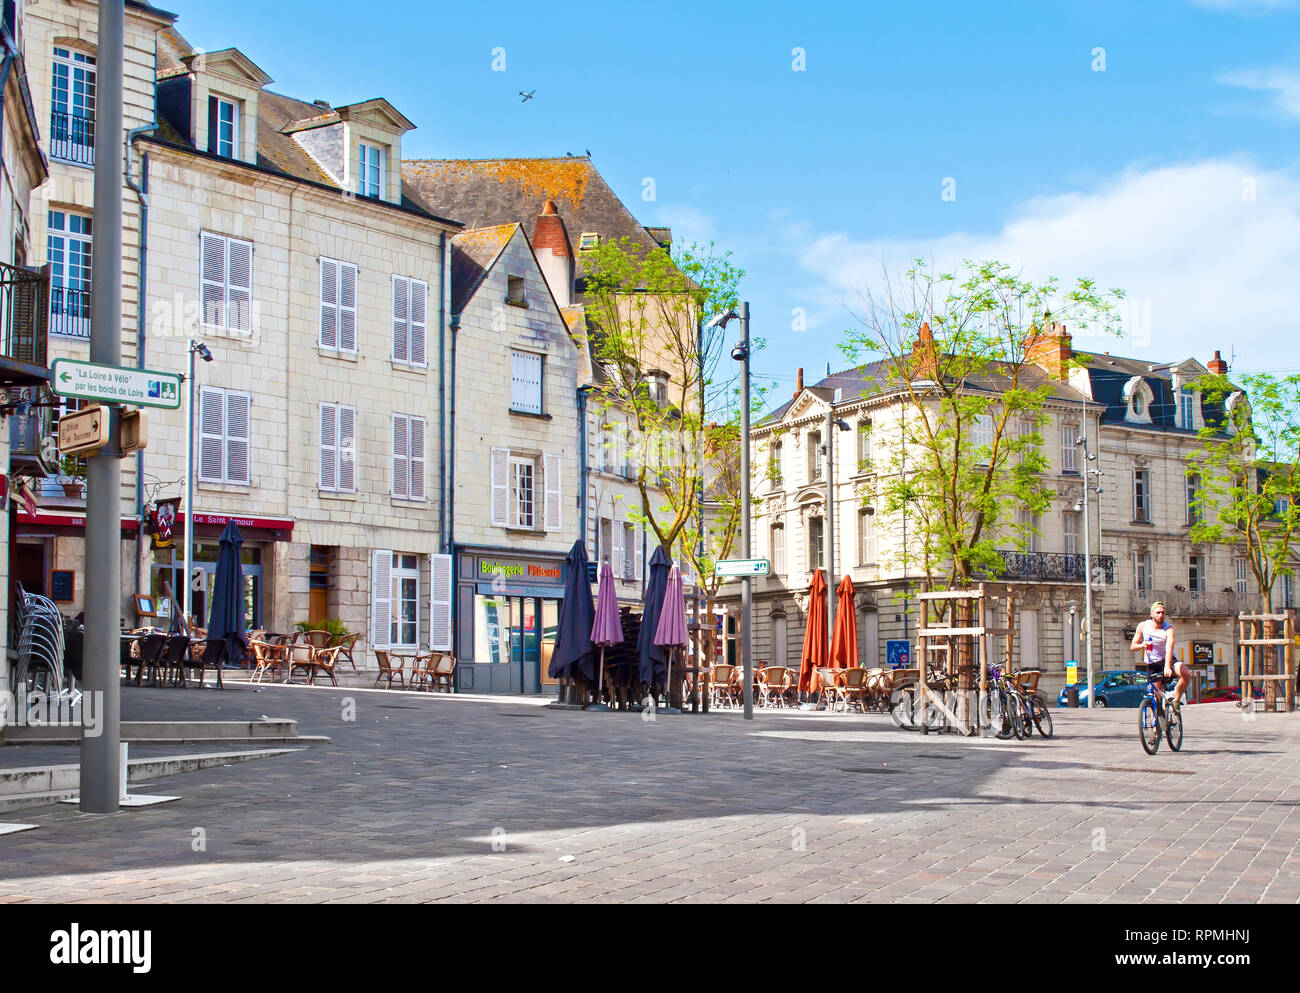 Saumur, France - April 22, 2018: One man on a bicycle at Eglise St Pierre square in solitary city center of a small town Saumur on a warm spring morni - Stock Image